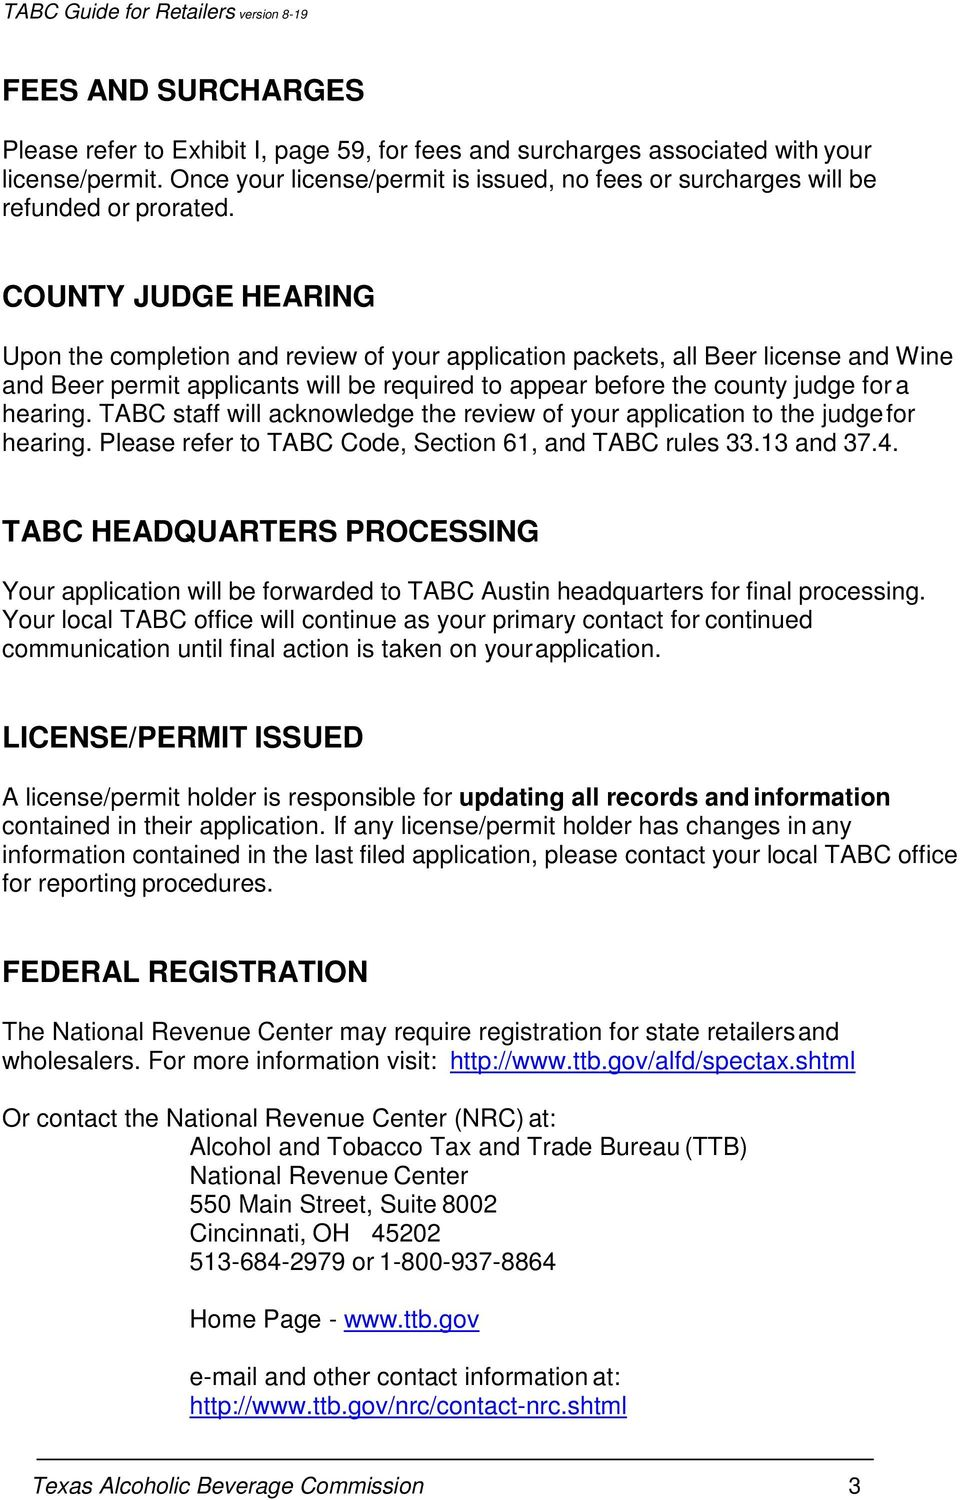 COUNTY JUDGE HEARING Upon the completion and review of your application packets, all Beer license and Wine and Beer permit applicants will be required to appear before the county judge for a hearing.